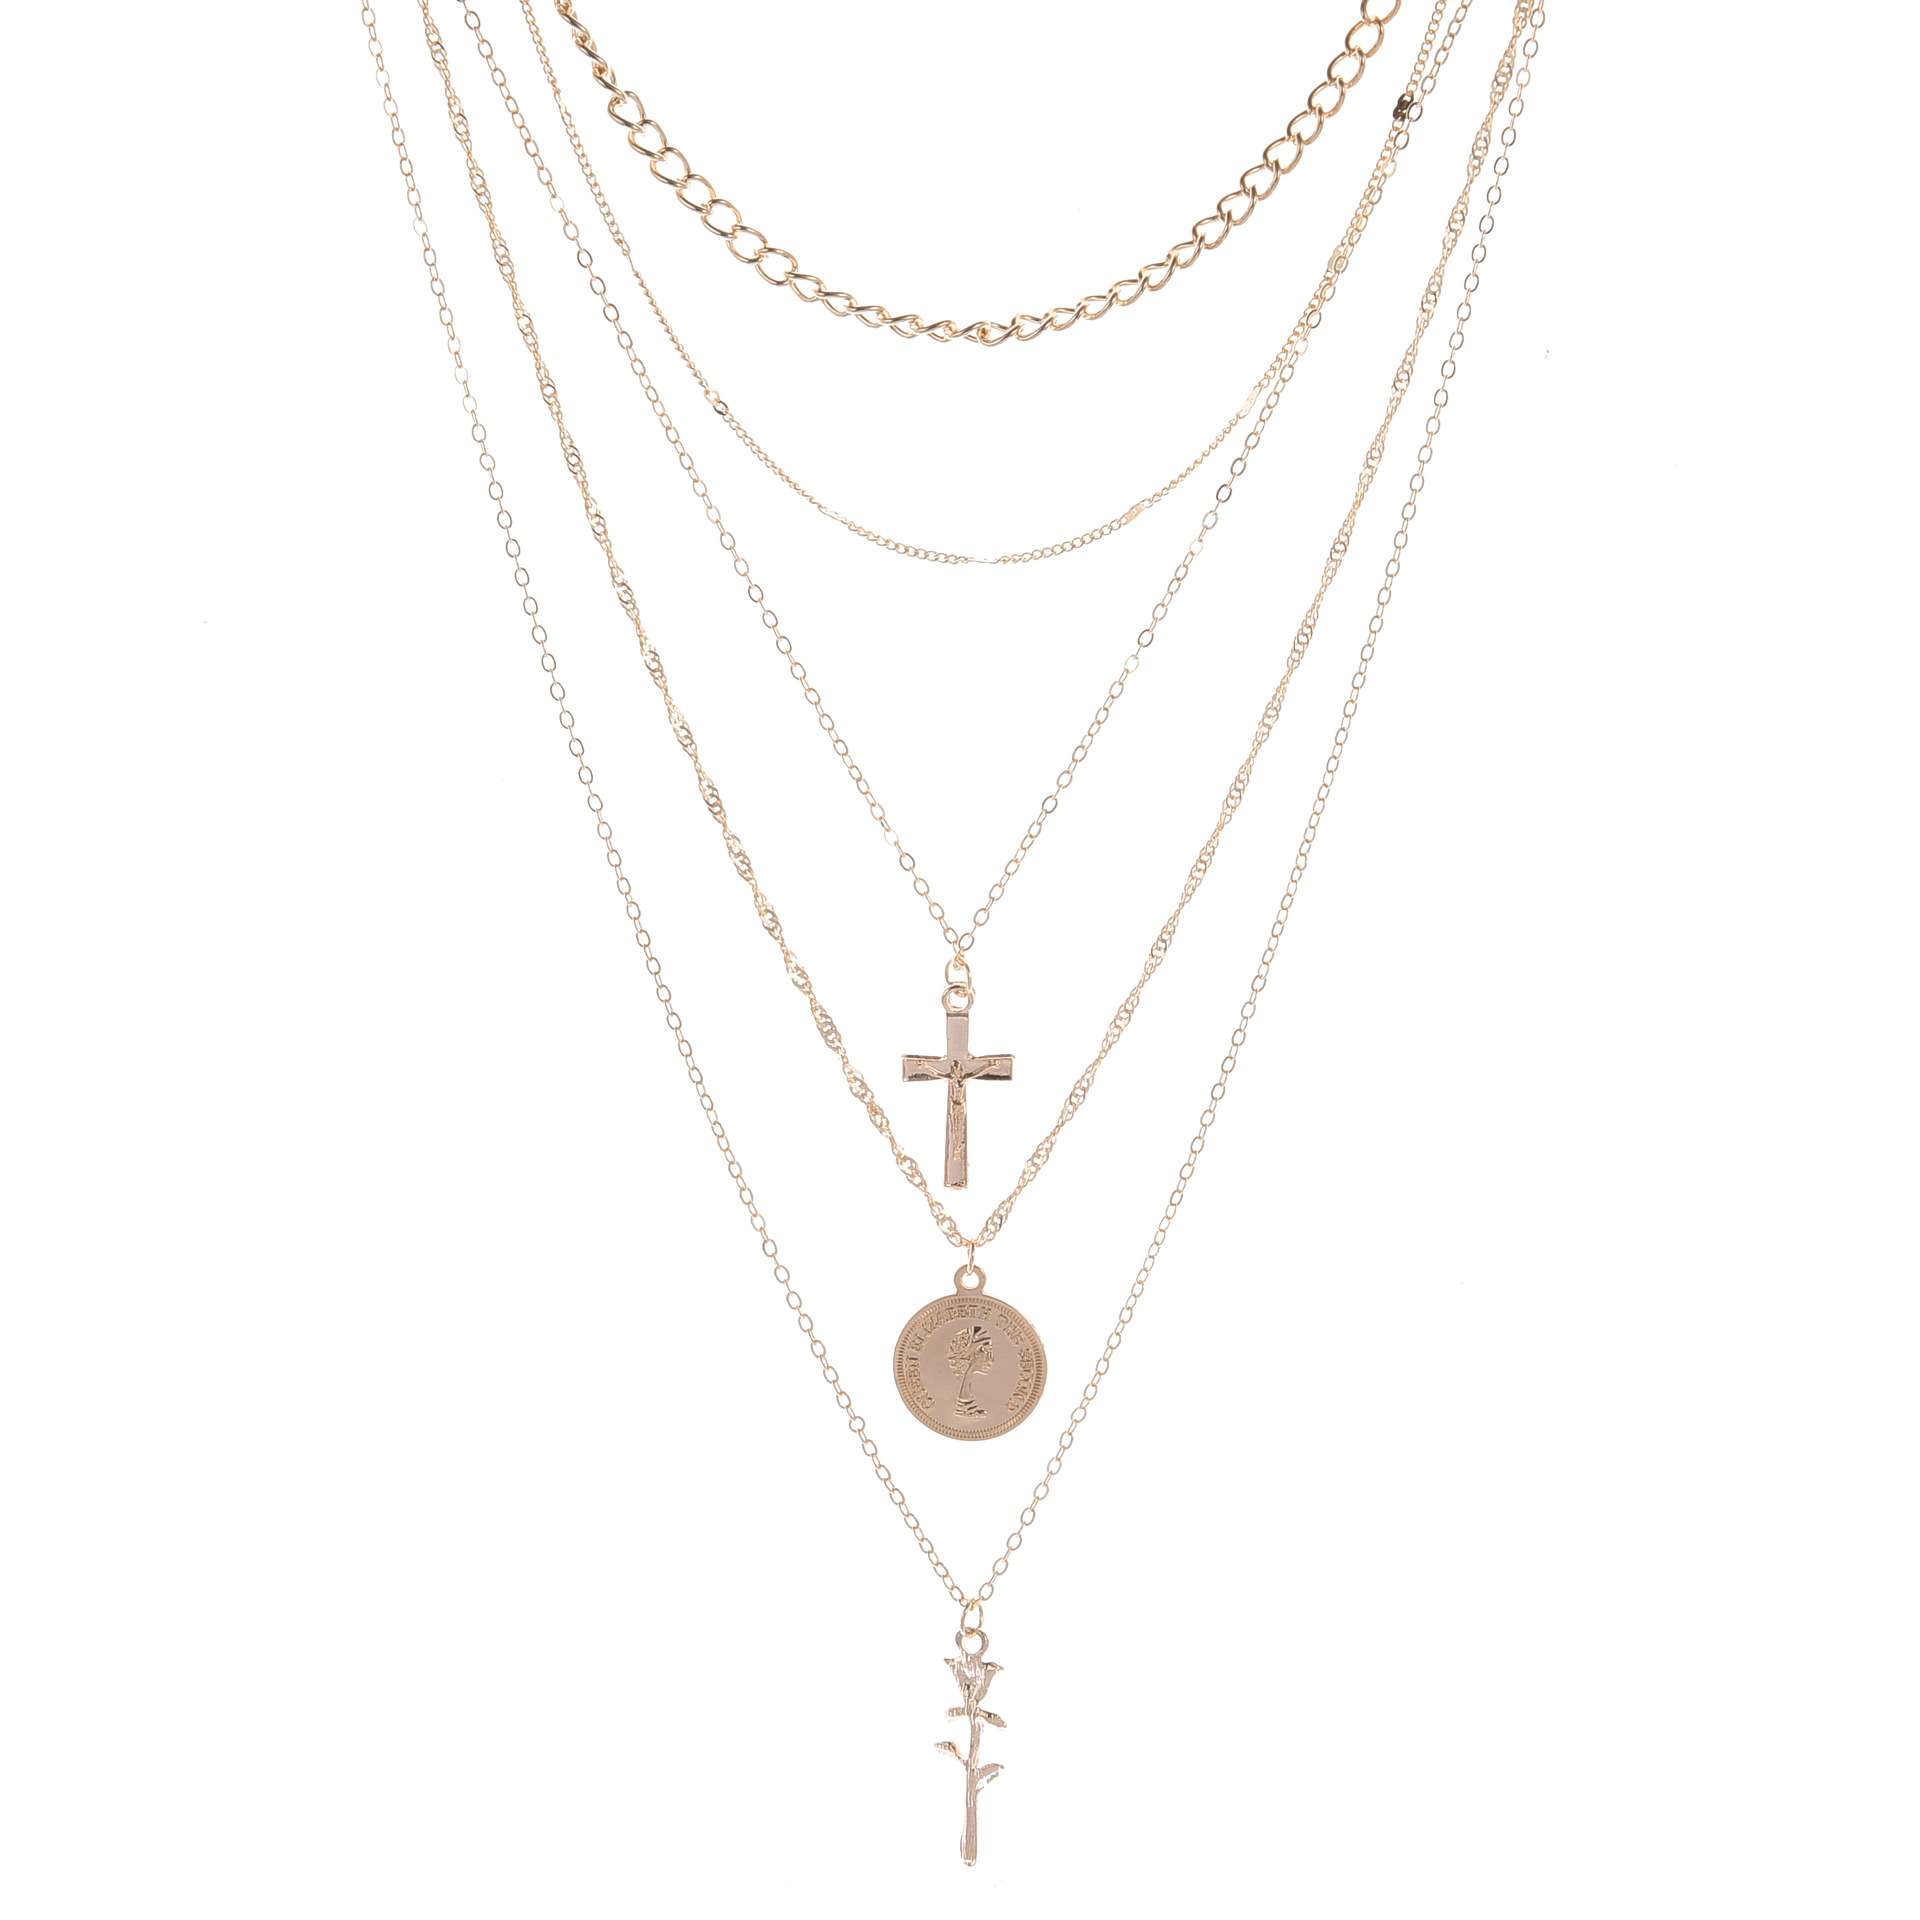 ZILPOIT Vintage Gold Silver Cross Rose Flower Pendant Necklaces for Women Girl Floral Layered Heart Necklace Bohemia Jewelry 4